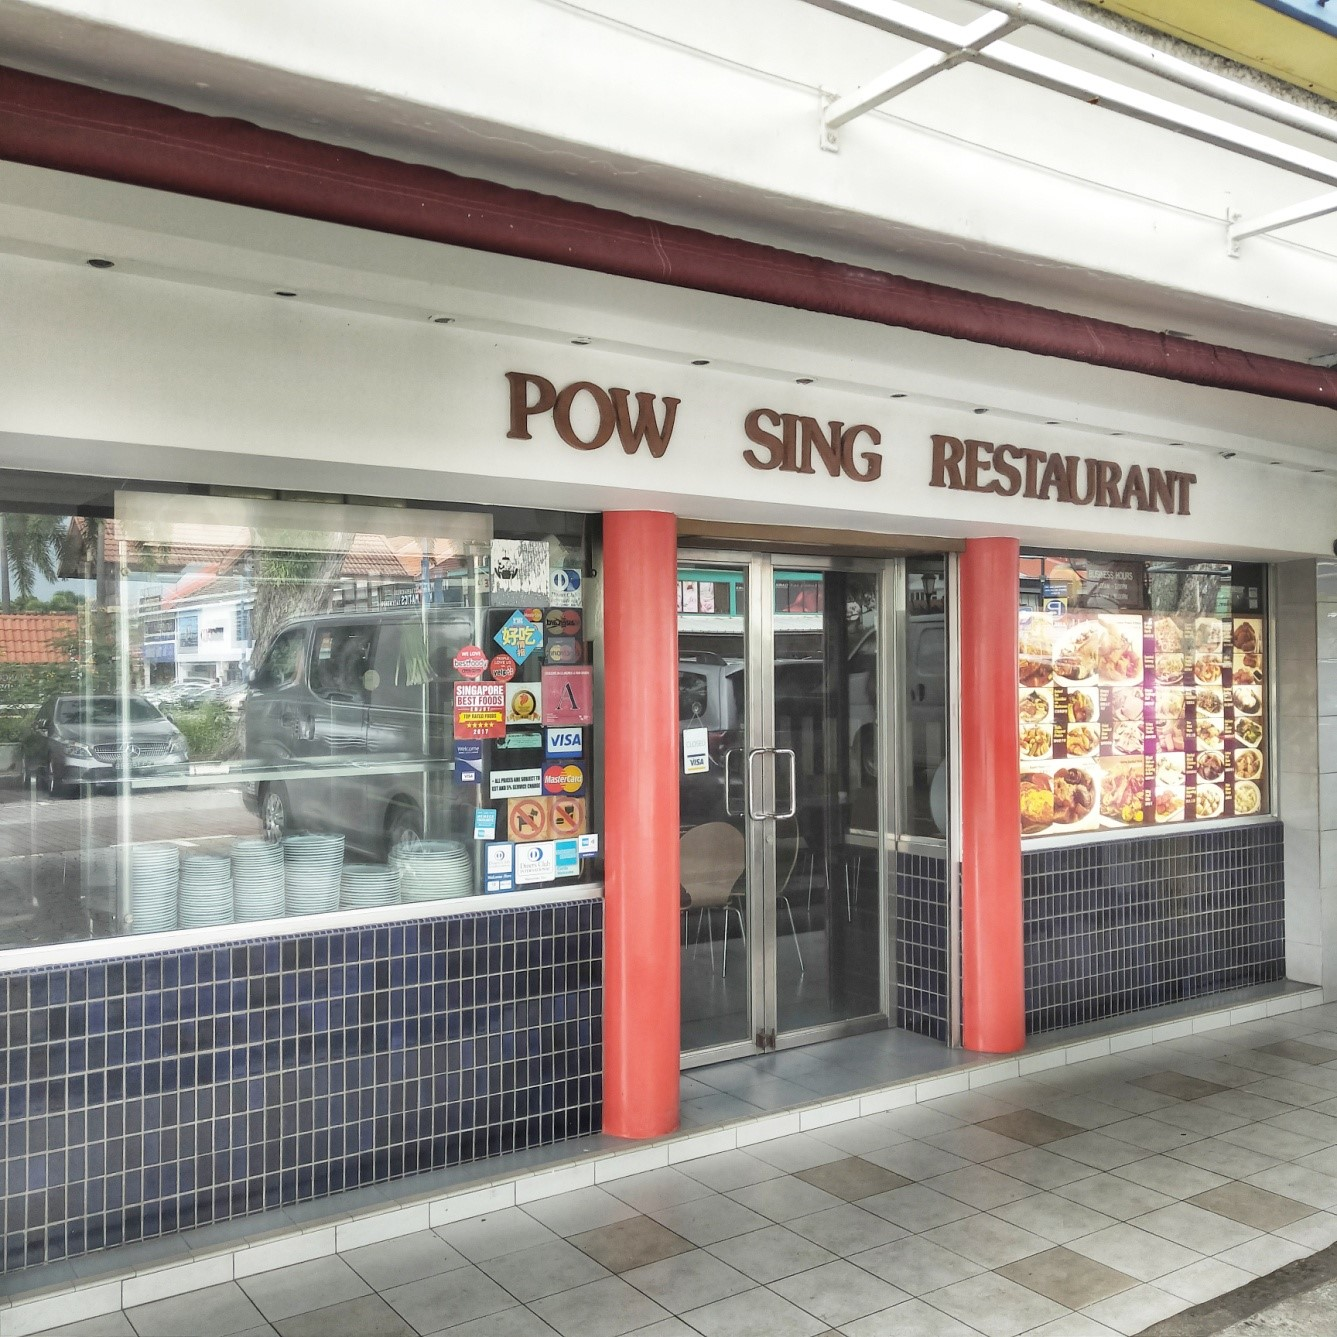 An appetising row of chickens indicates that Pow Sing is open - EDGEPROP SINGAPORE